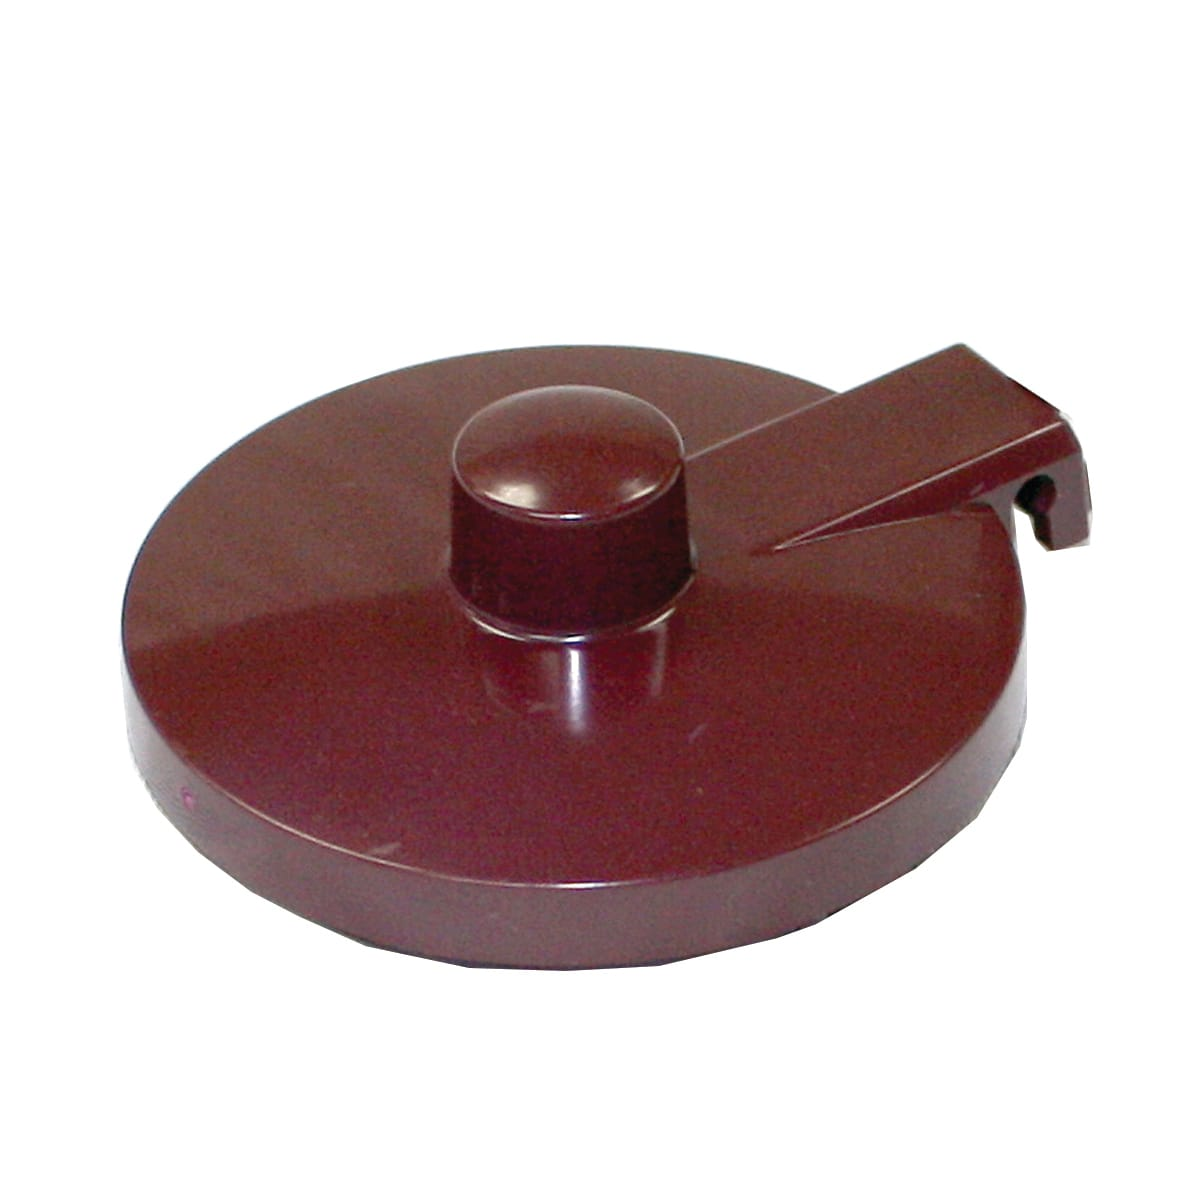 Service Ideas TPLBU Replacement Lid For TS612 Teapot, Burgundy